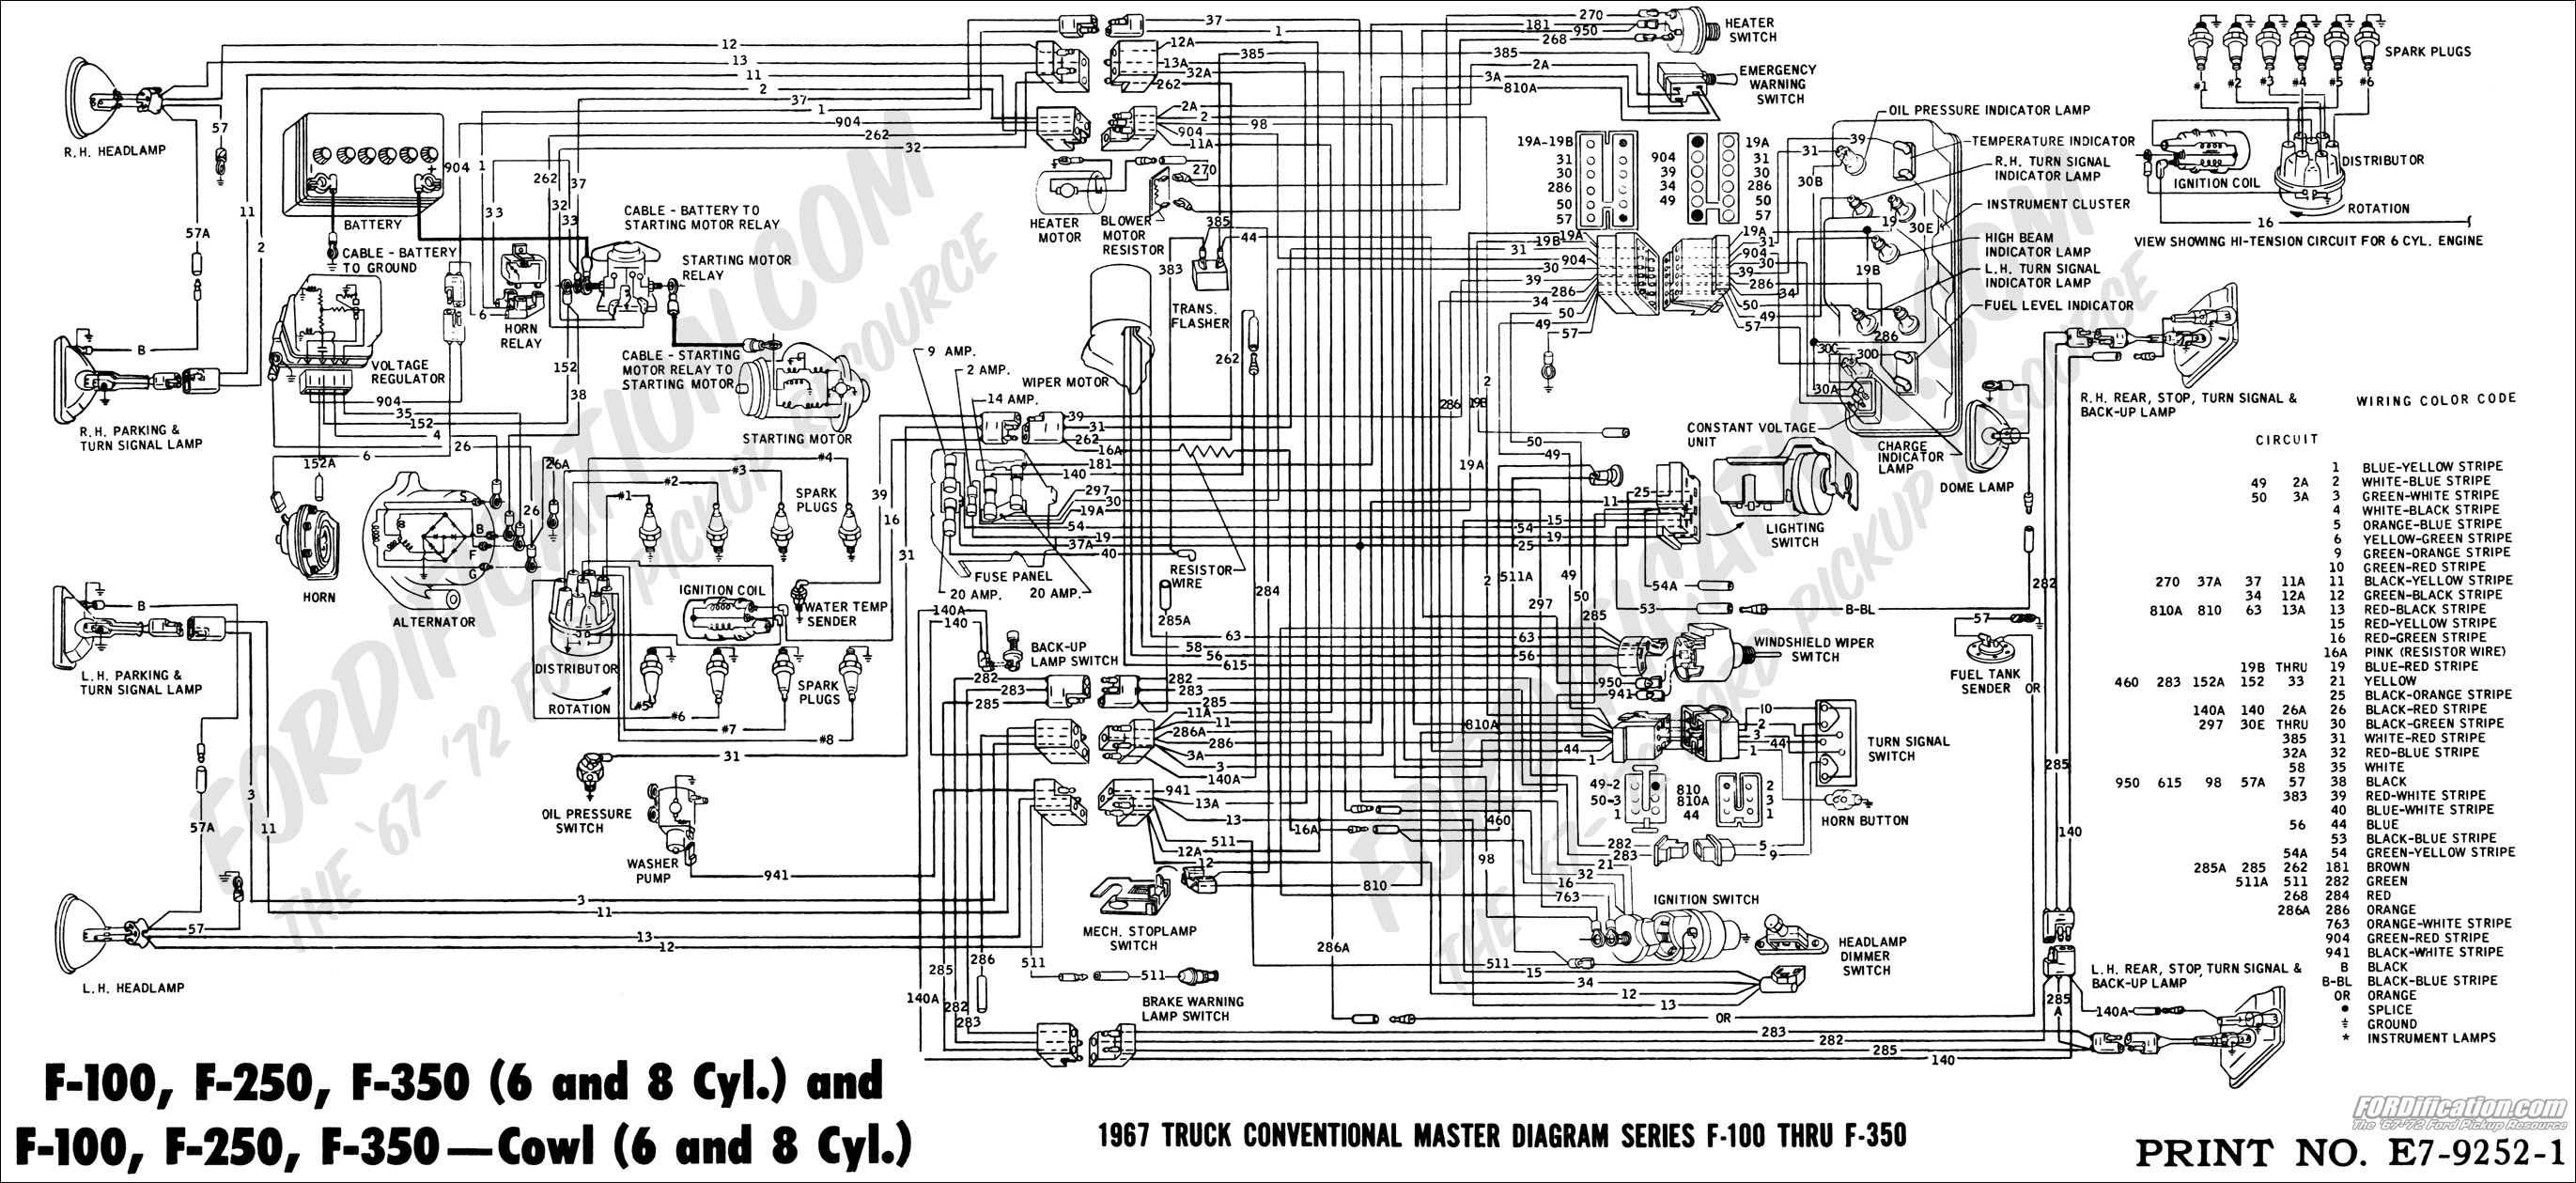 2001 Ford F150 Stereo Wiring Diagram from www.fordification.com